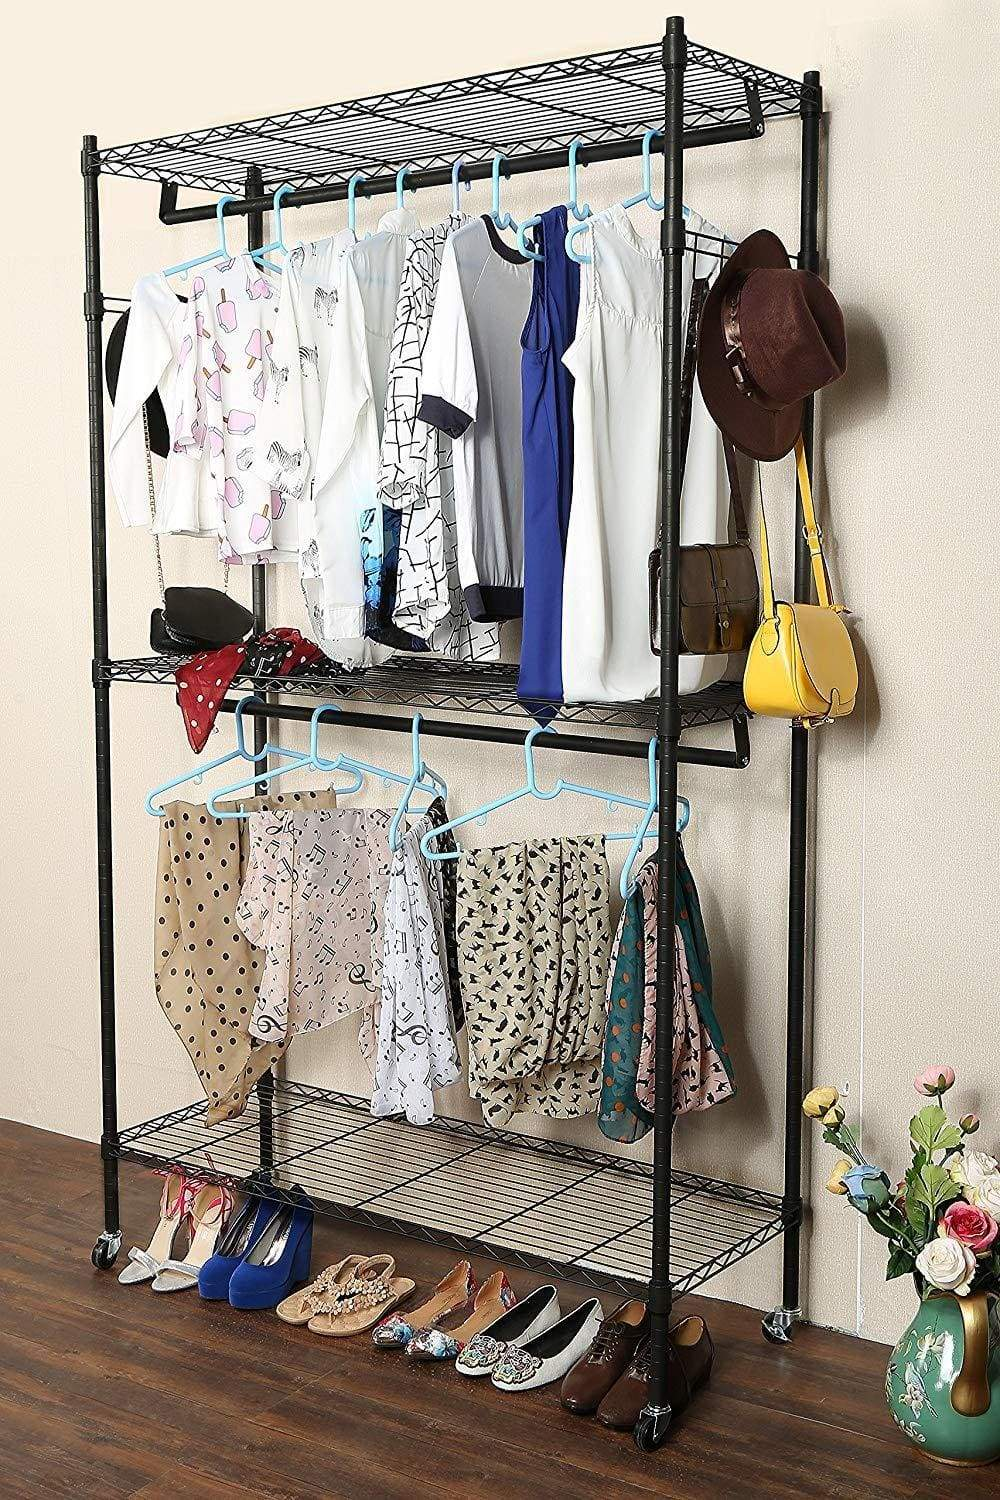 Home modrine double rod garment rack 3 tiers heavy duty hanging closet with lockable rolling wheels 2 side hooks and 2 clothes rods black